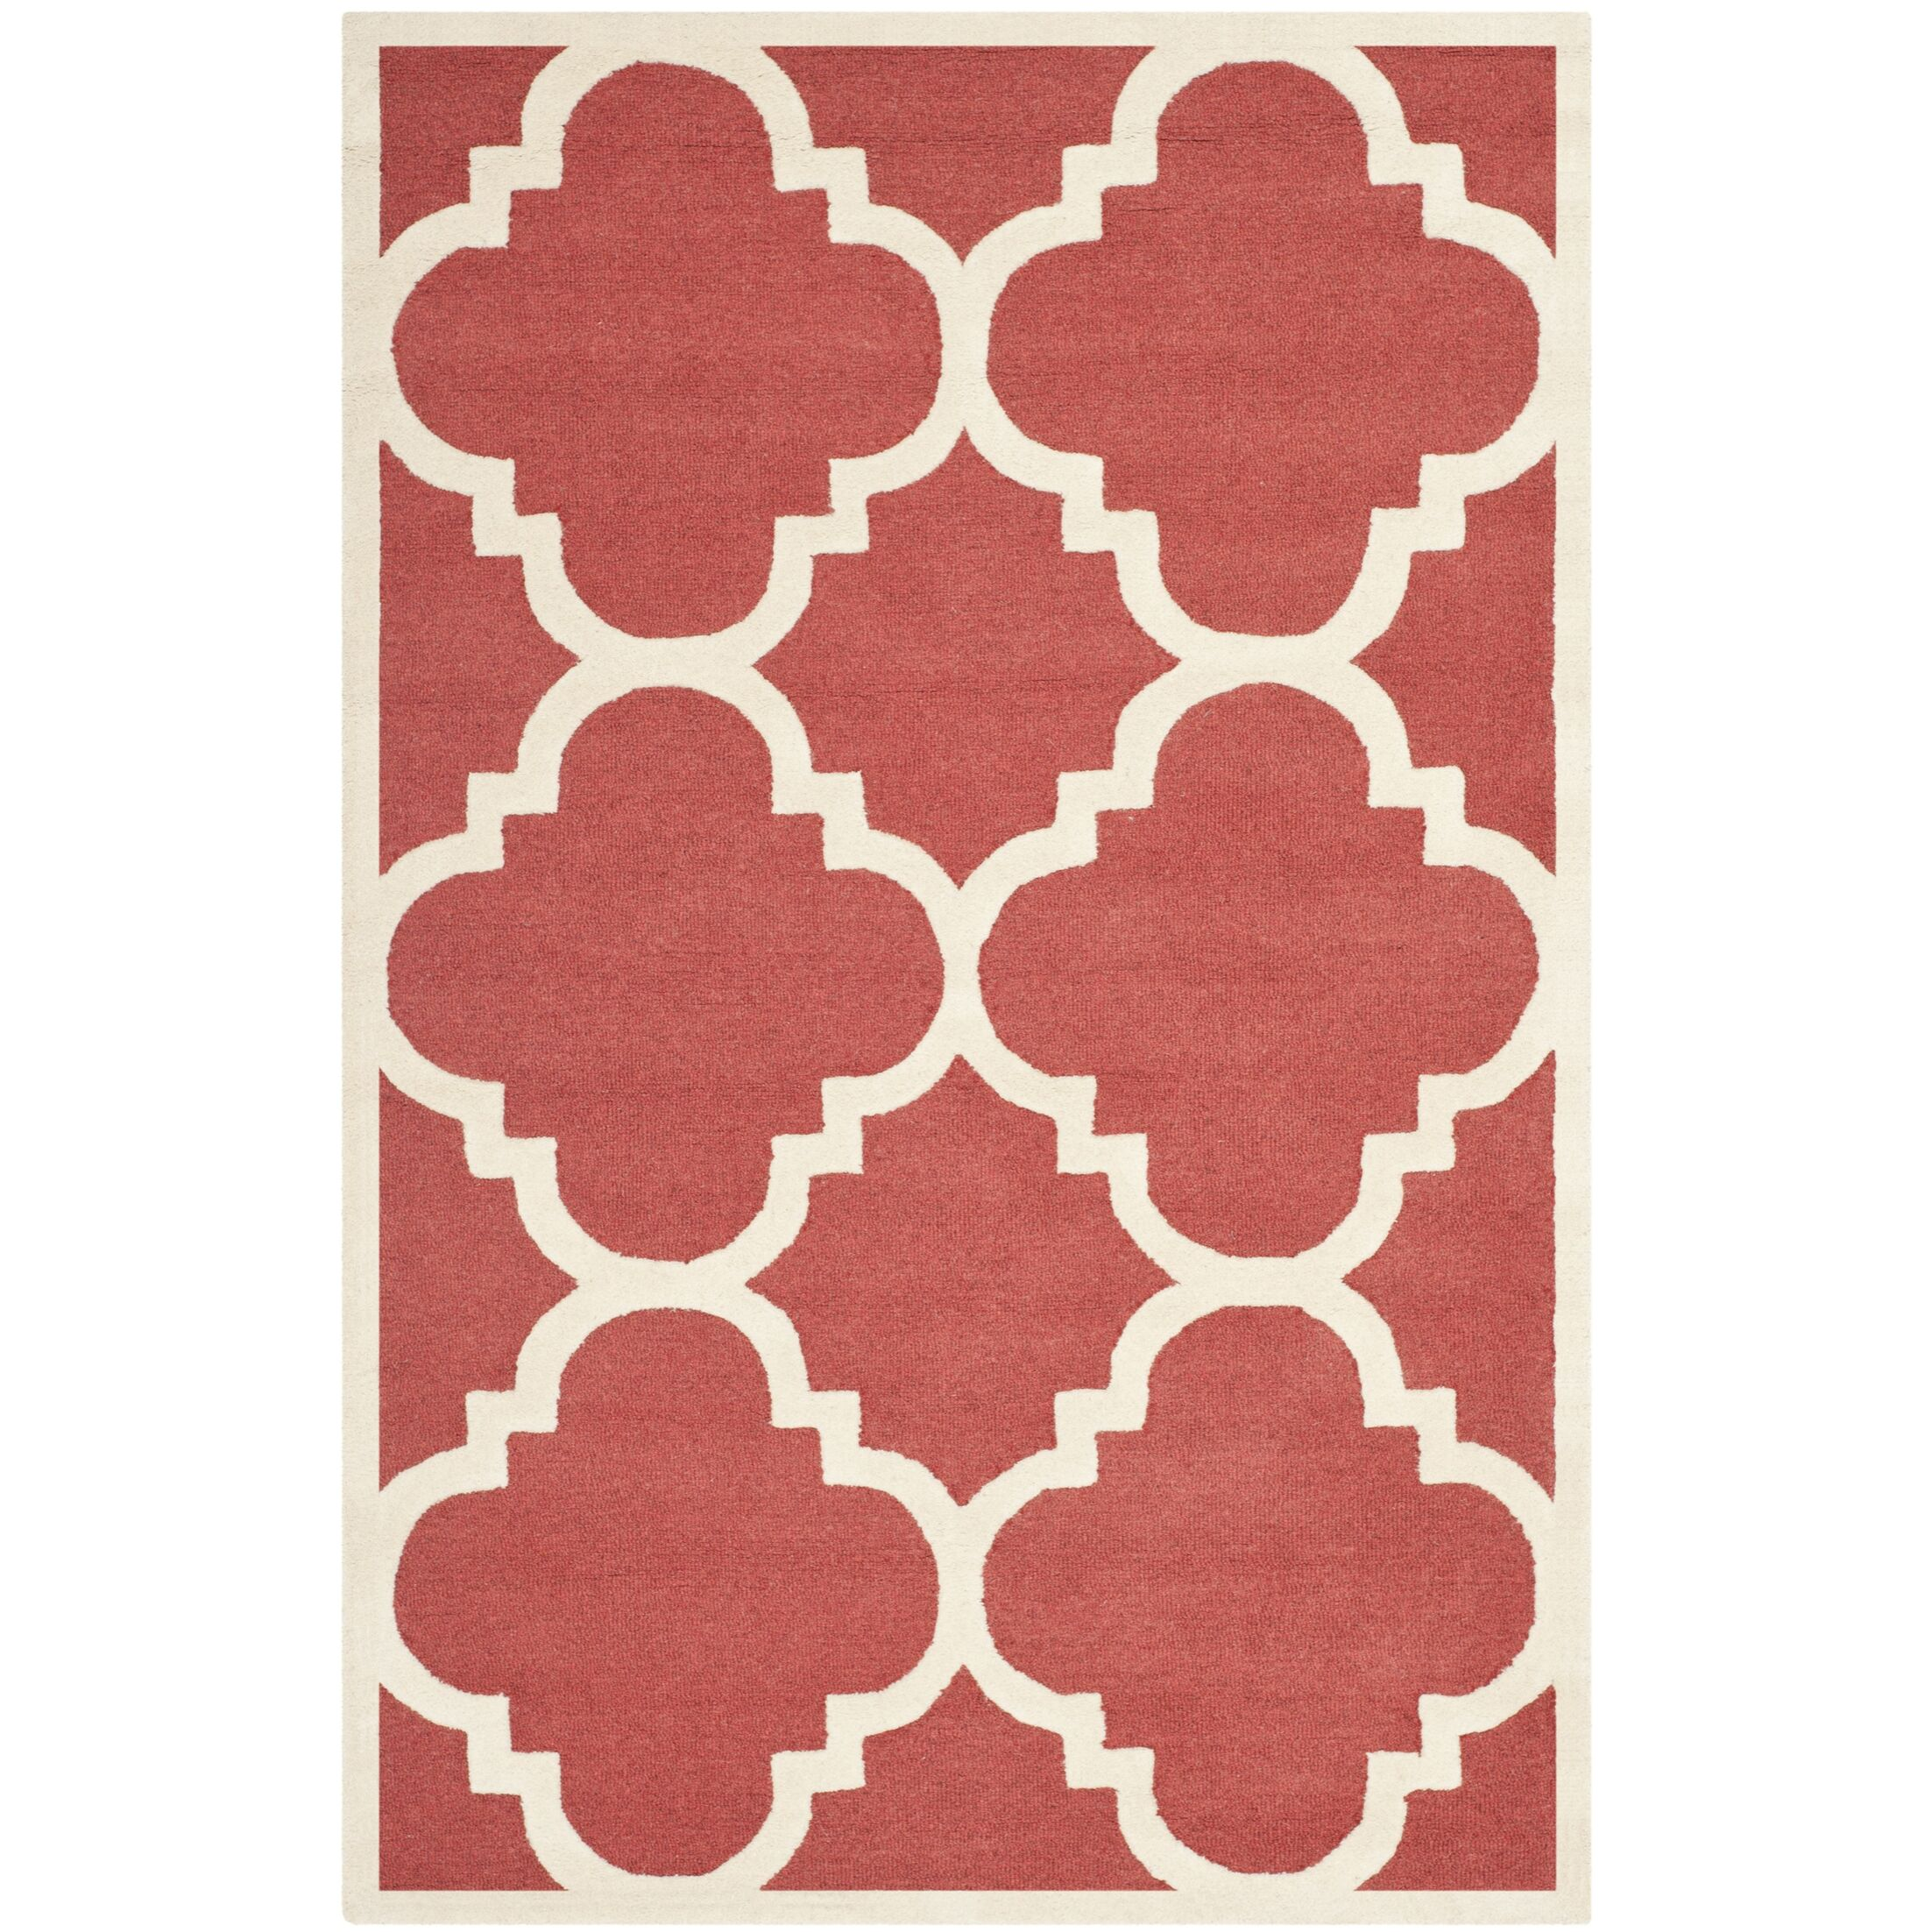 Martins Hand-Tufted Rust/Ivory Area Rug Rug Size: Rectangle 9' x 12'